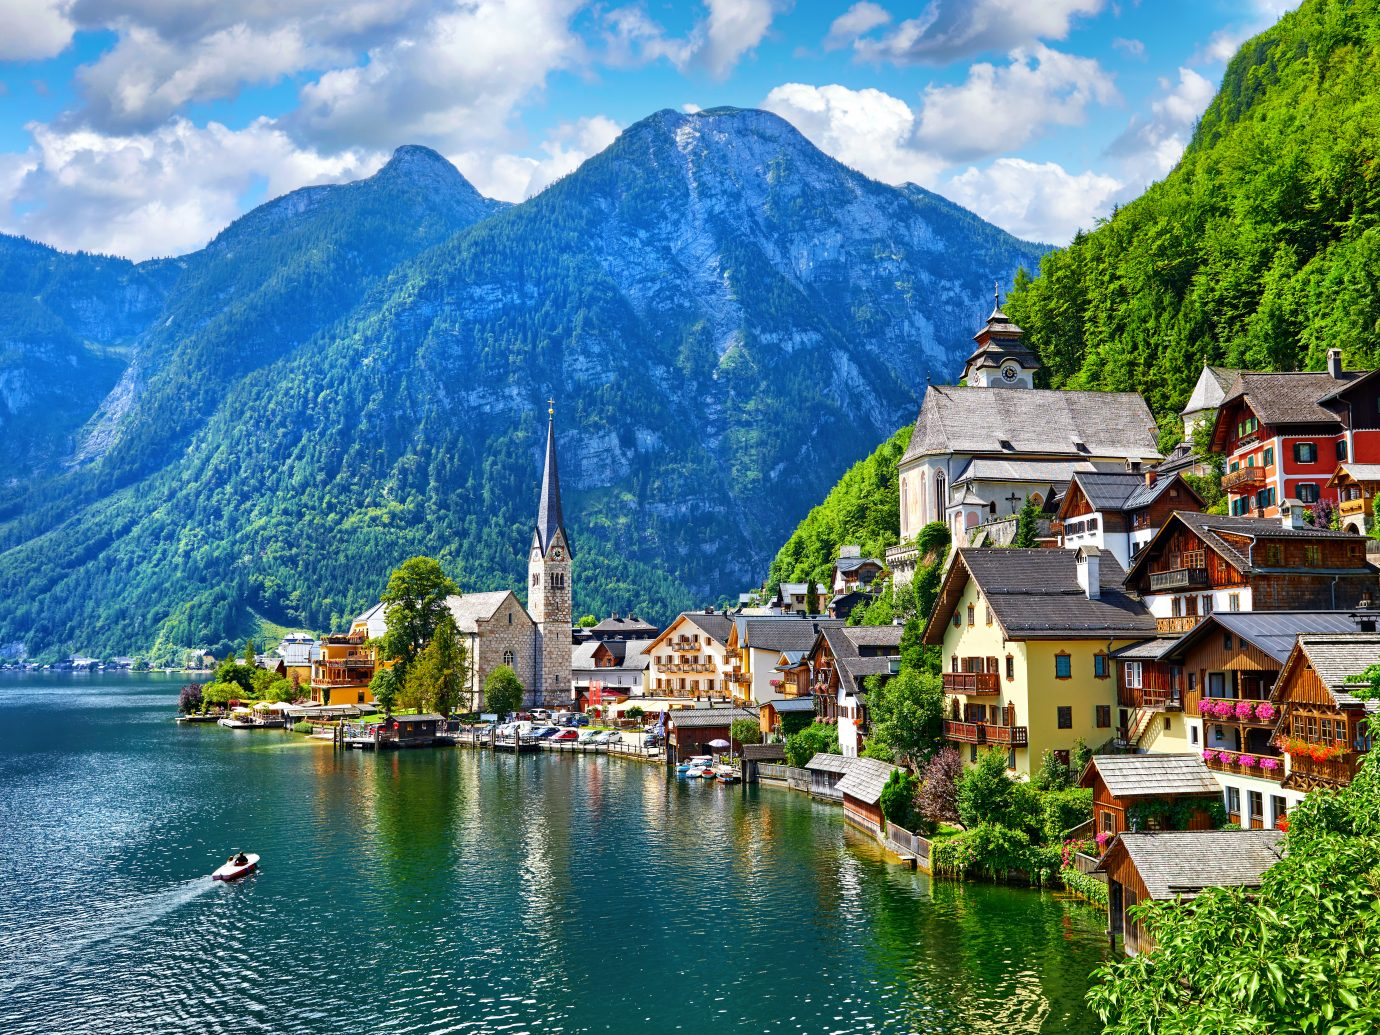 View of Hallstattersee Lake and Alps mountains summits